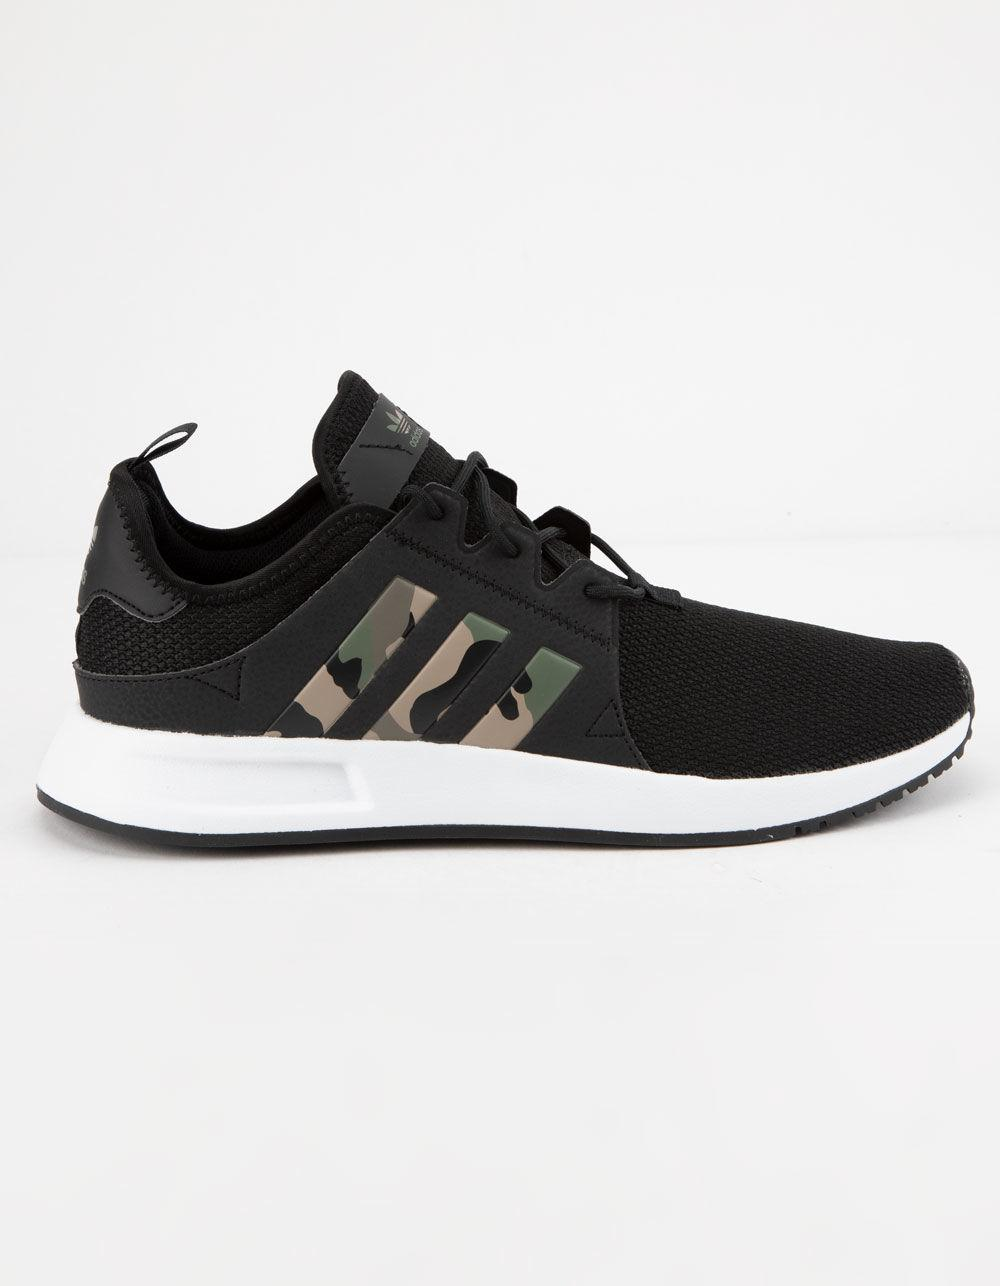 b02024bf6fbe Lyst - adidas X plr Core Black   Camo Shoes in Black for Men